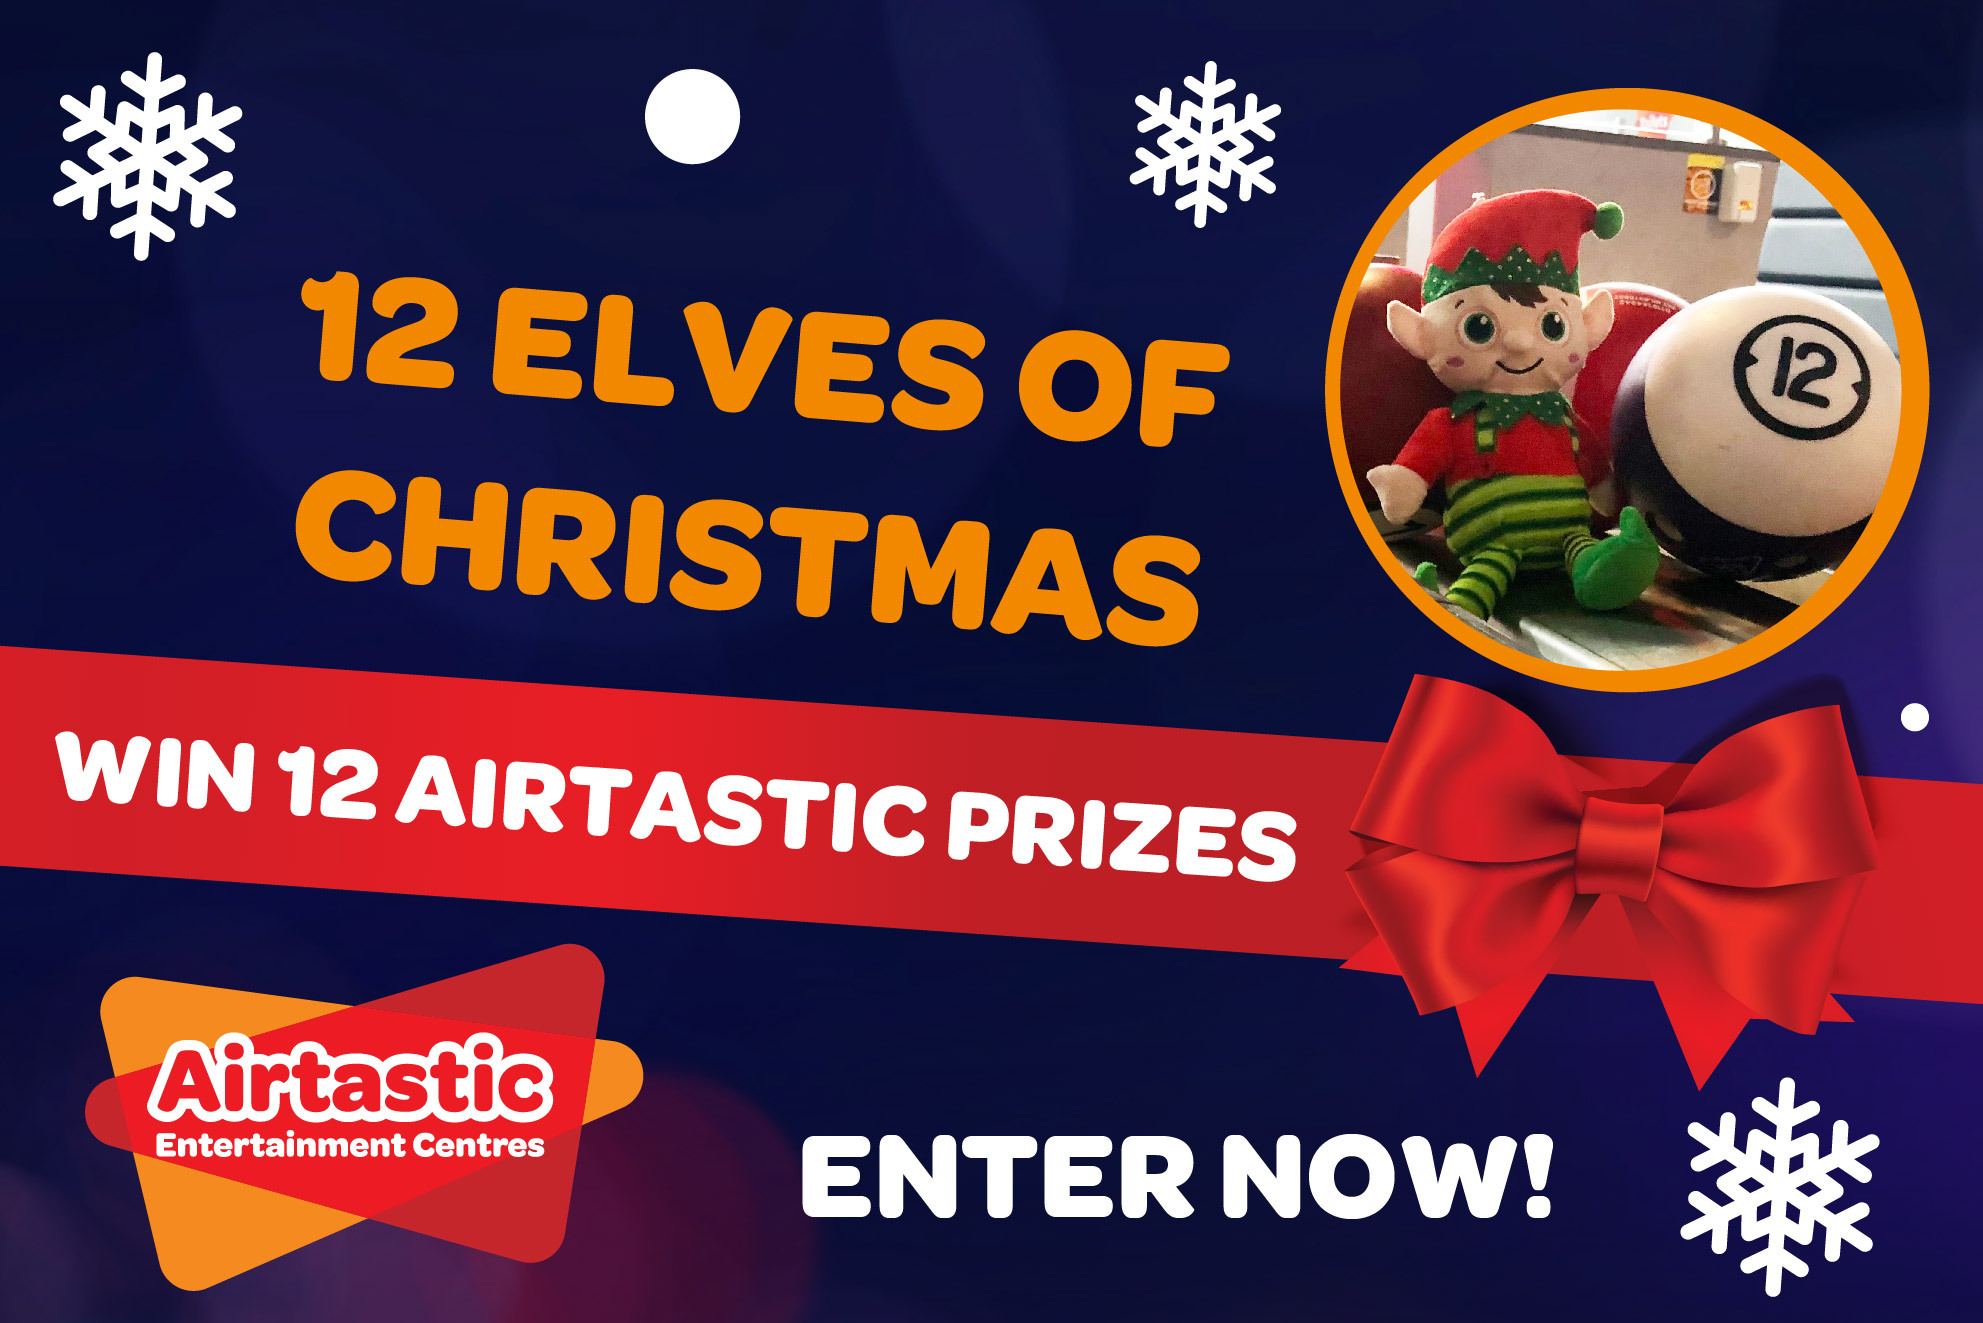 Airtastic 12 Elves of Christmas Giveaway 2020 Web Banner